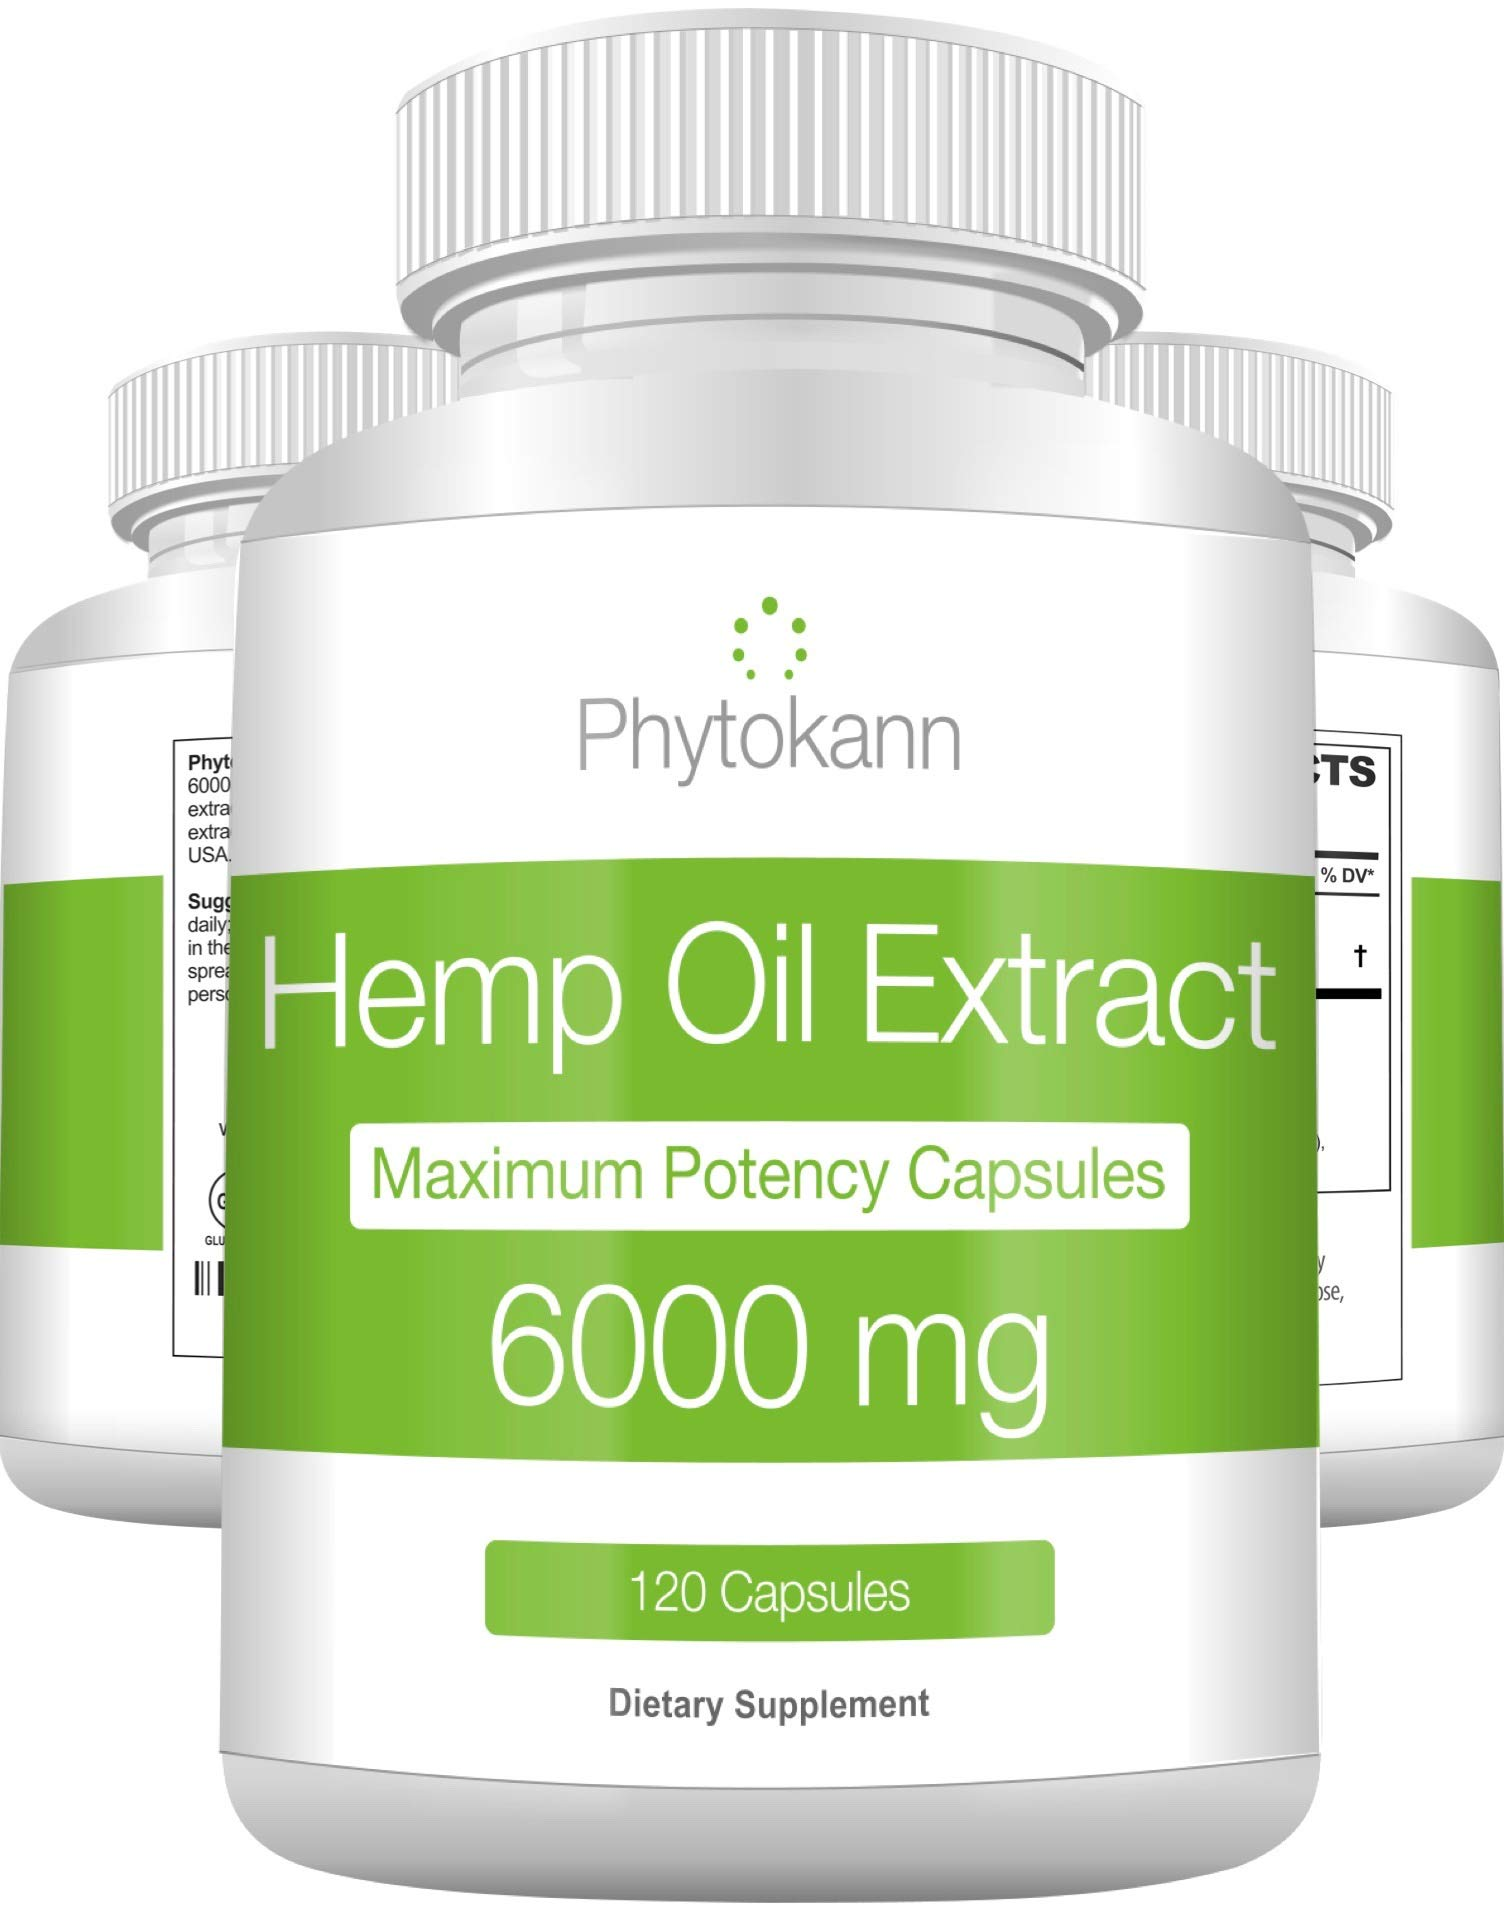 Hemp Oil Capsules 6000 MG - Best Hemp Extract for Pain Relief with Omega 3 6 9-100% Organic Hemp Oil for Pain - Hemp Capsules for Natural Anxiety Relief and Immune Support - Made in USA by Phytokann